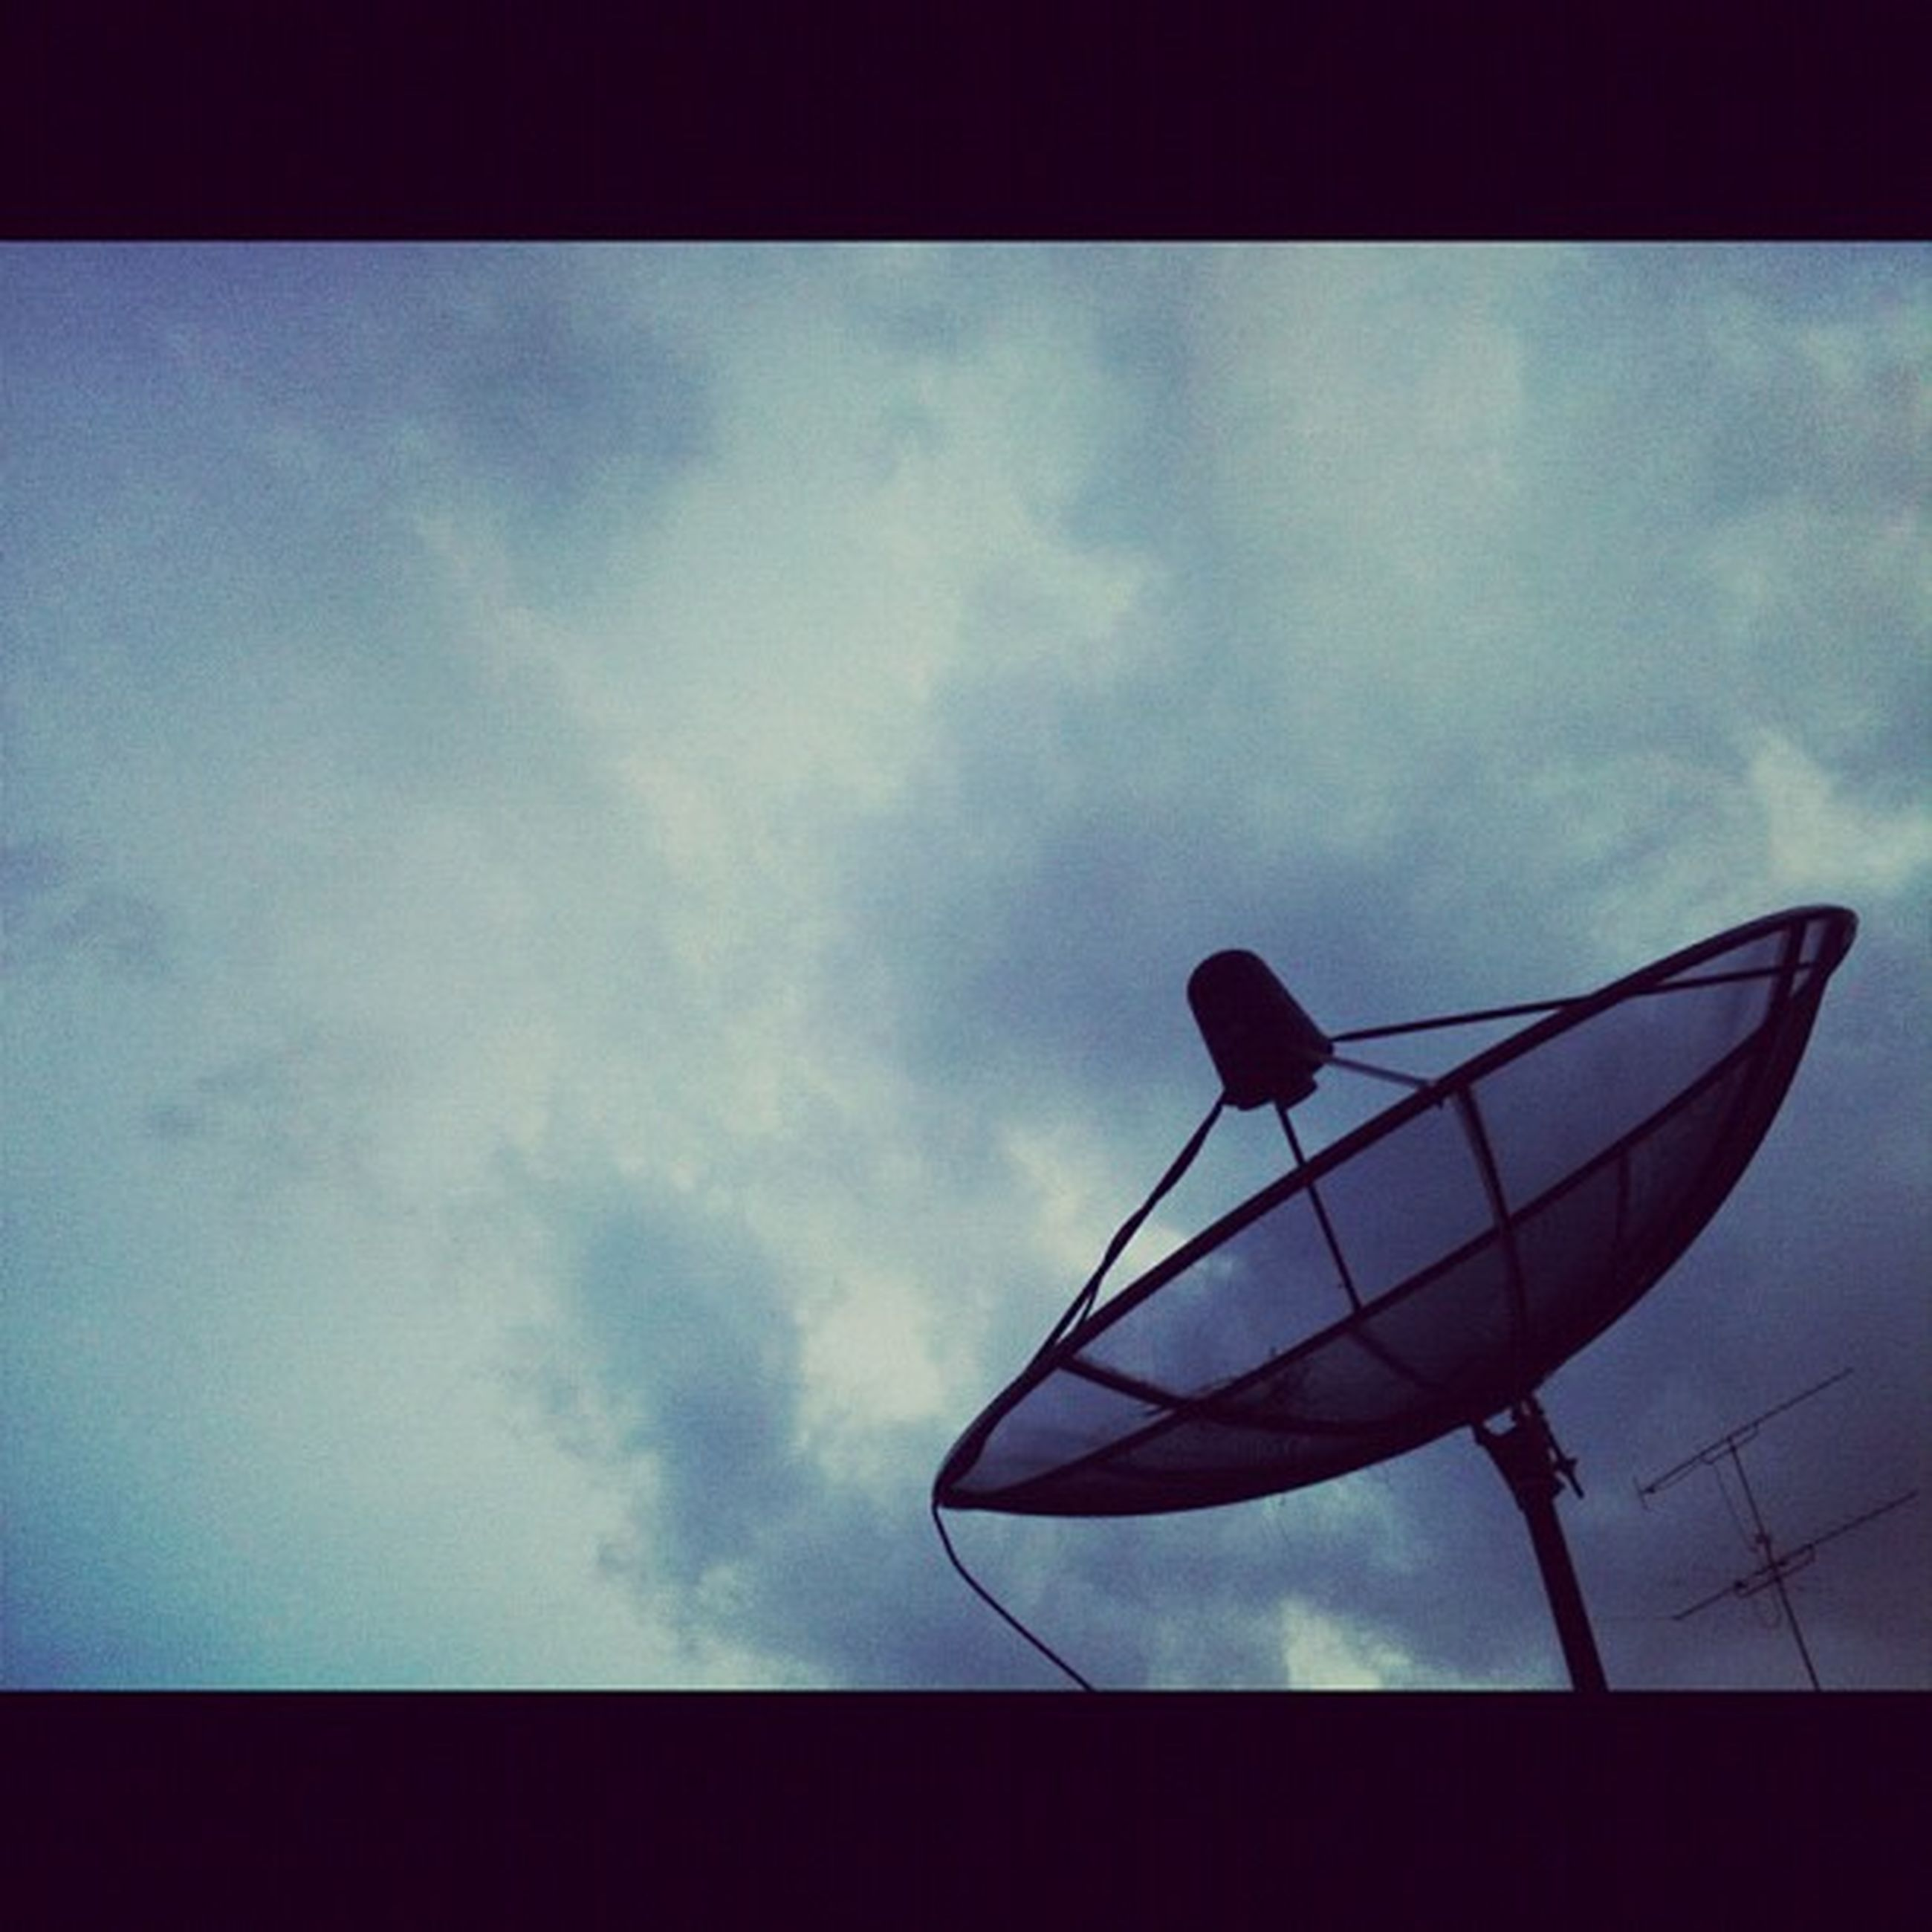 sky, low angle view, transfer print, cloud - sky, auto post production filter, cloud, cloudy, silhouette, no people, street light, day, outdoors, dusk, nature, lighting equipment, overcast, pole, tranquility, vignette, transportation